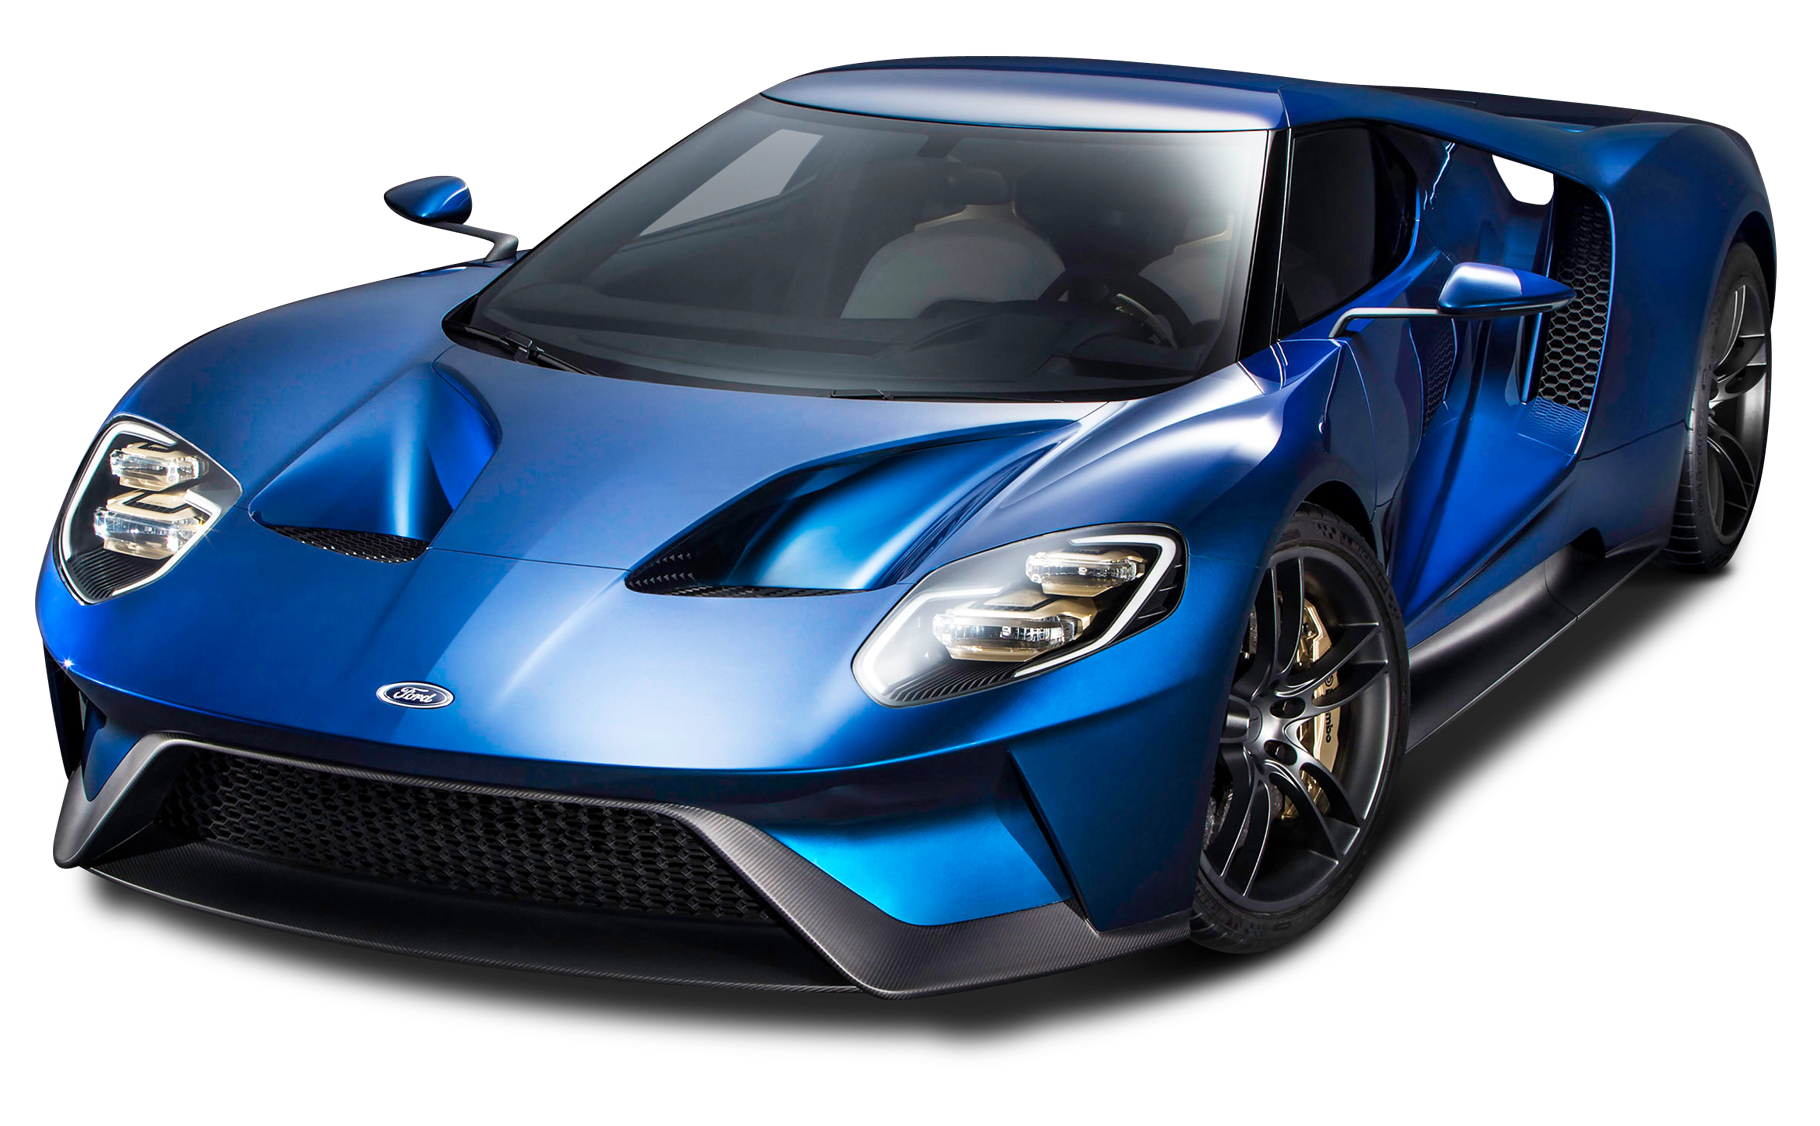 Ford Gt Blue Super Car Png Image Purepng Free Transparent Cc Png Image Library